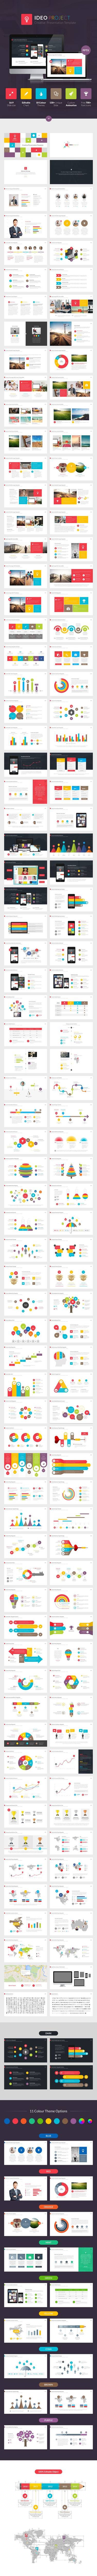 Ideo Powerpoint Presentation Template PowerPoint Template / Theme / Presentation / Slides / Background / Power Point #powerpoint #template #theme